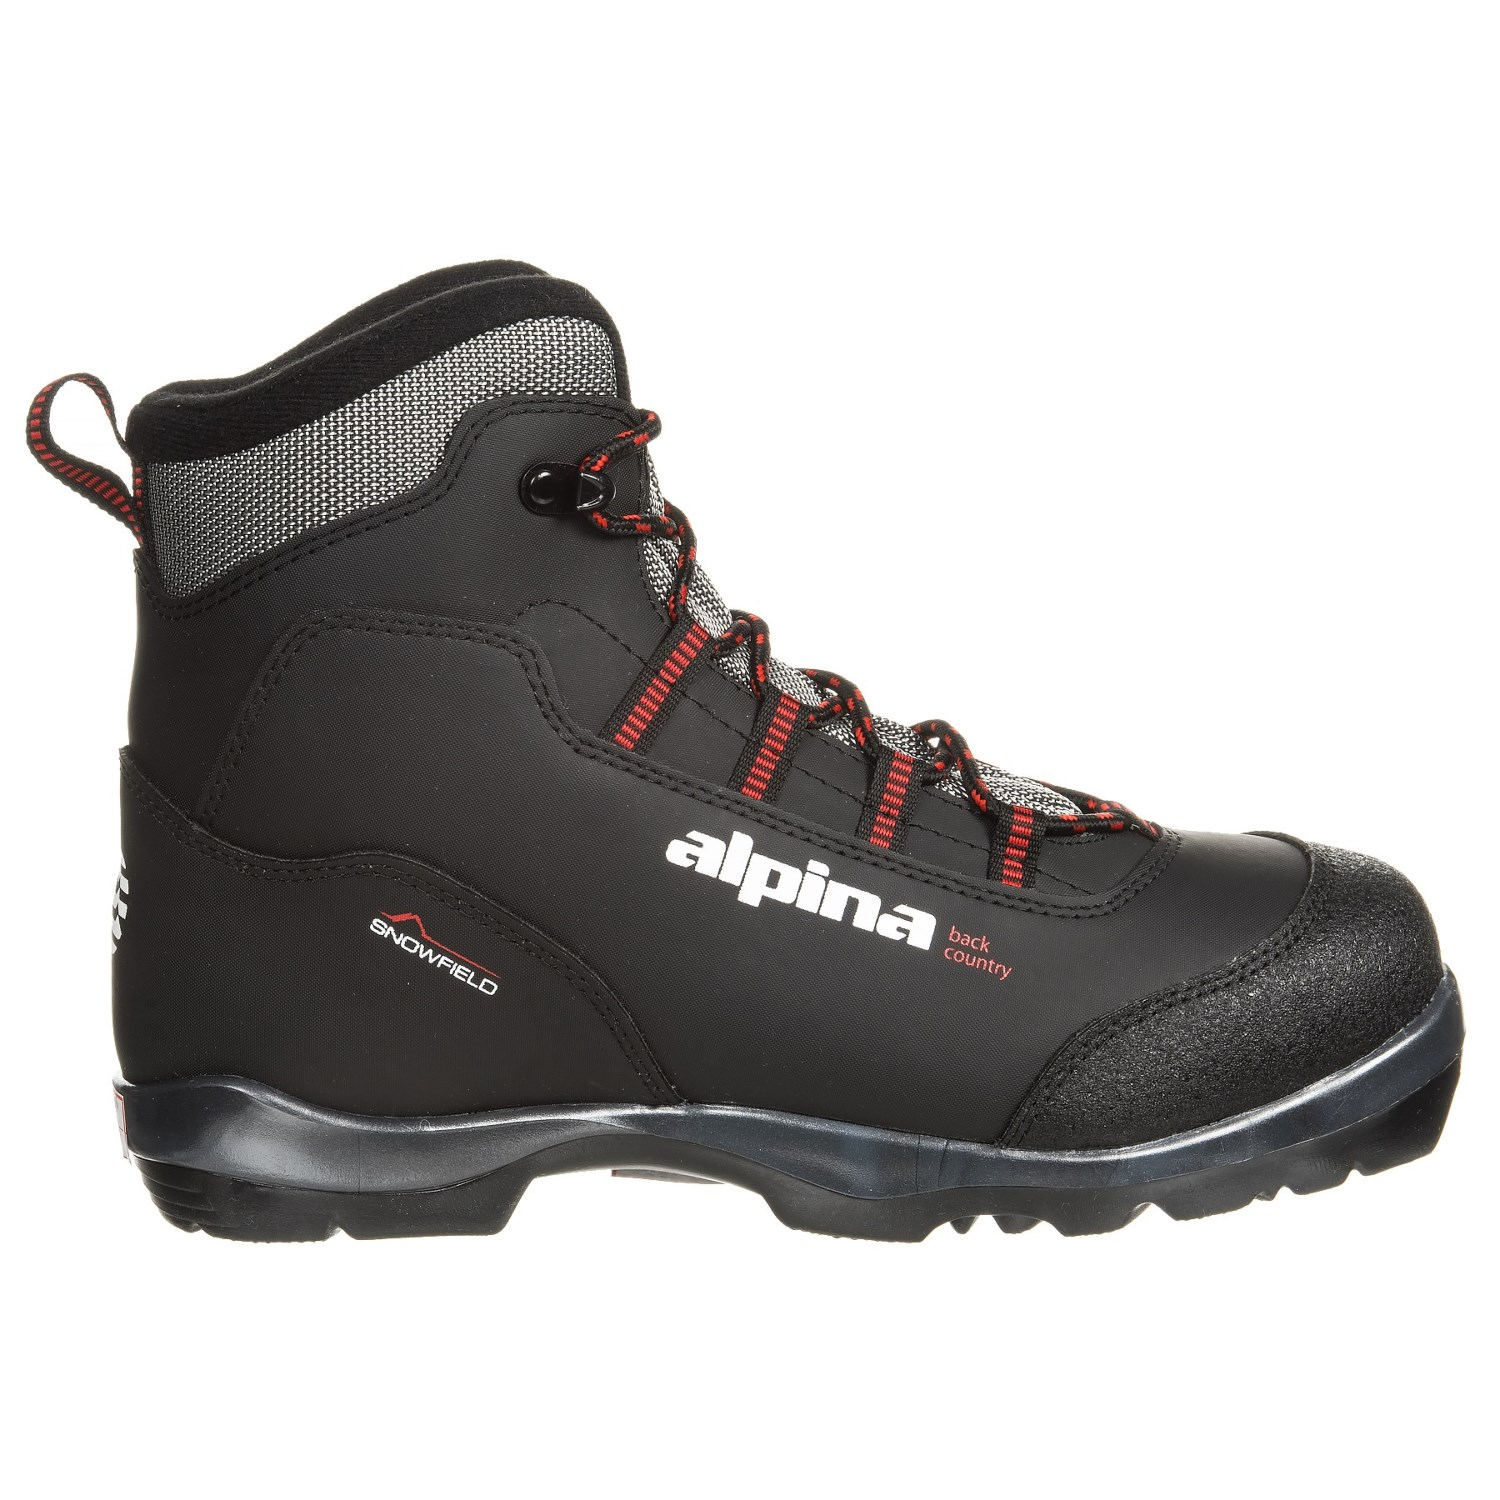 Alpina Snowfield Nordic Backcountry Ski Boots For Men Save - Alpina backcountry ski boots